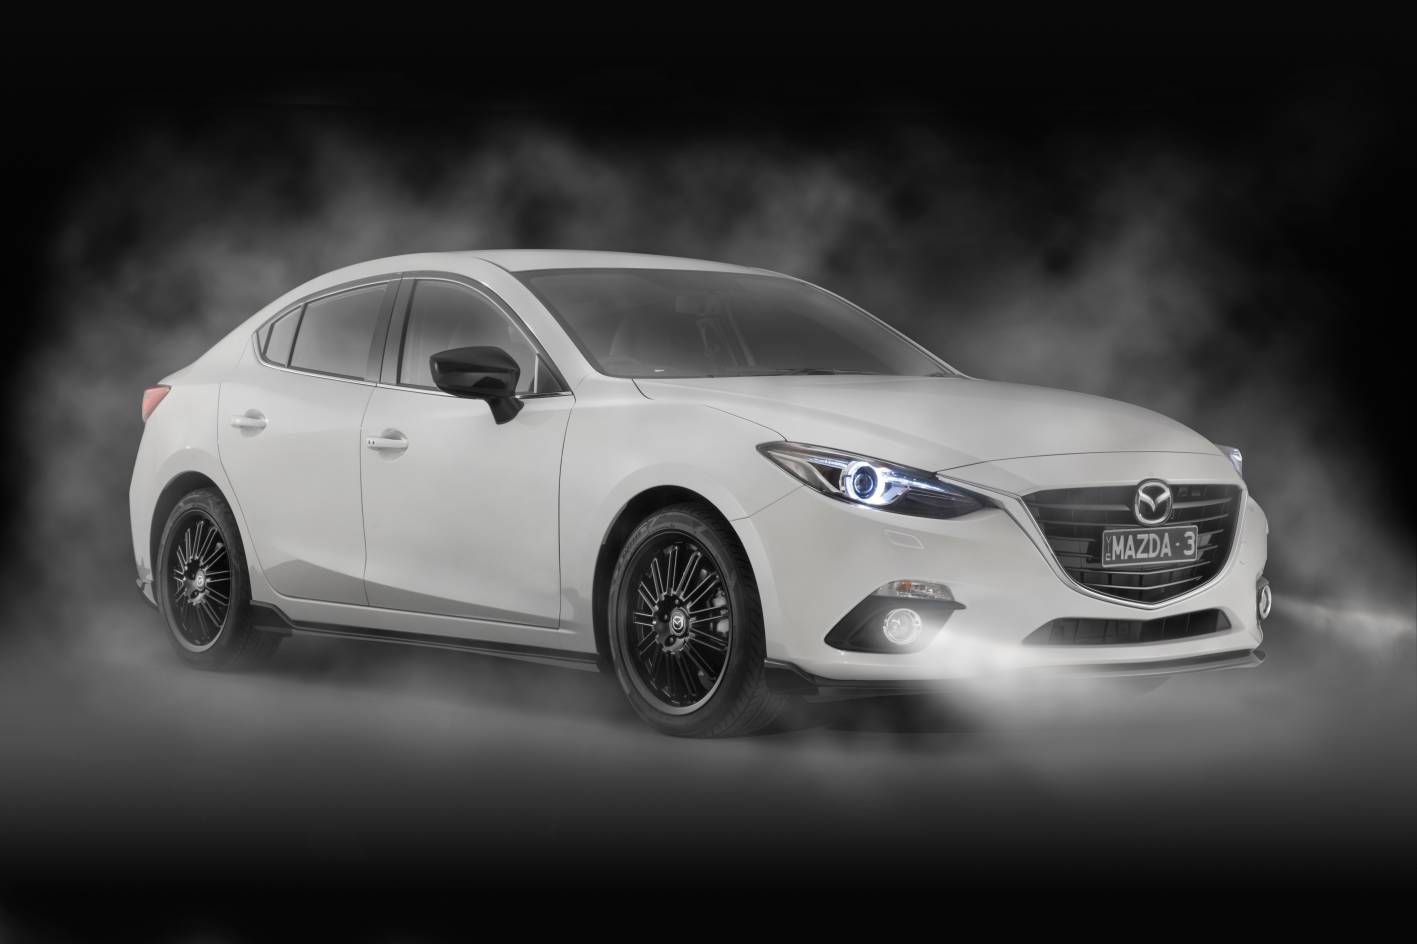 2019 Mazda 6 Hatchback photo - 5